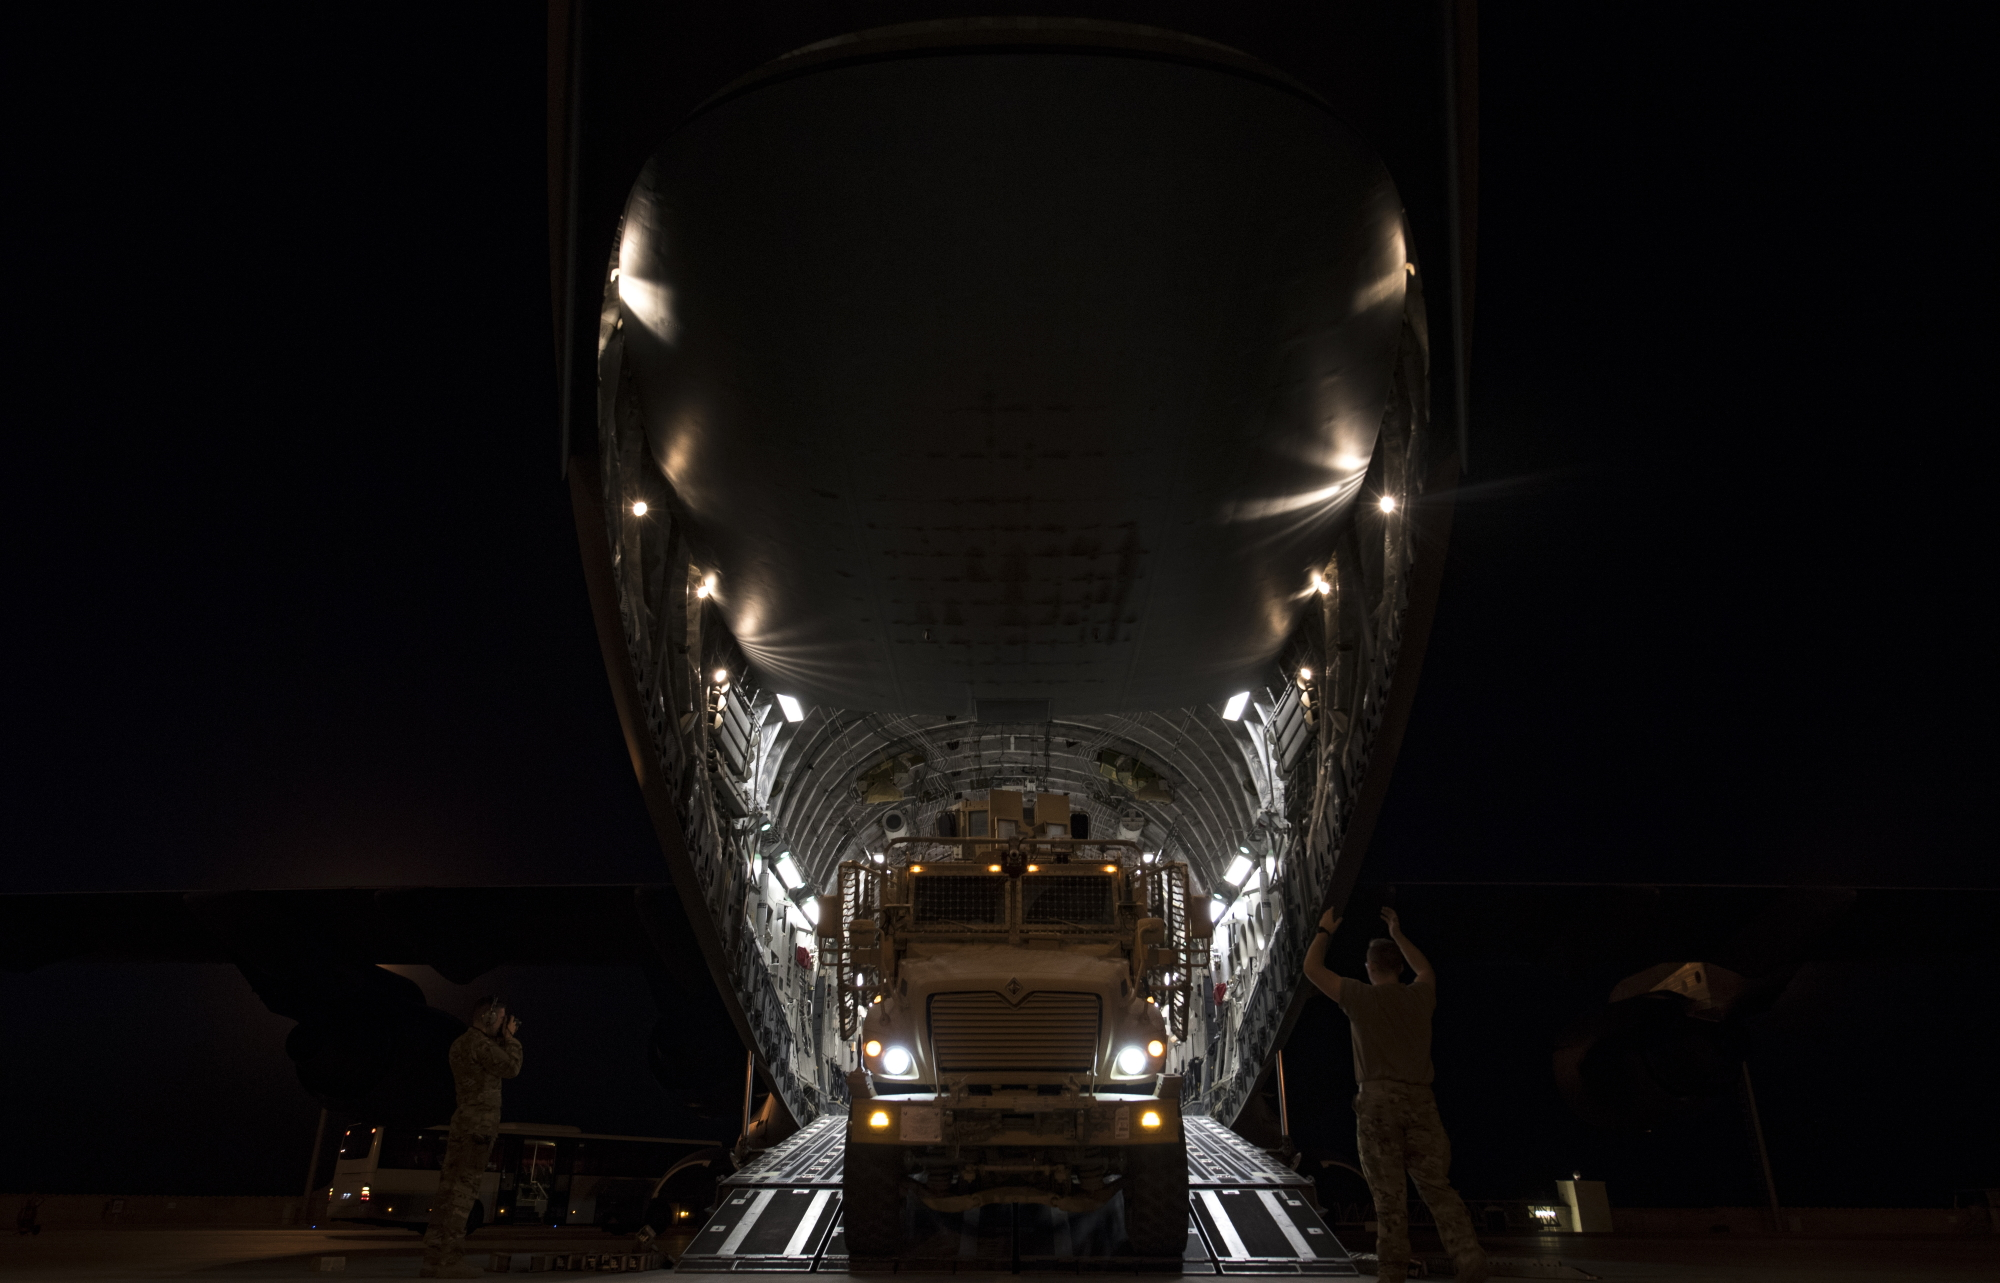 Airmen unload cargo off a C-17 Globemaster III at Bagram Airfield, Afghanistan, Oct. 20, 2019. (Staff Sgt. Matthew Lotz/Air Force)